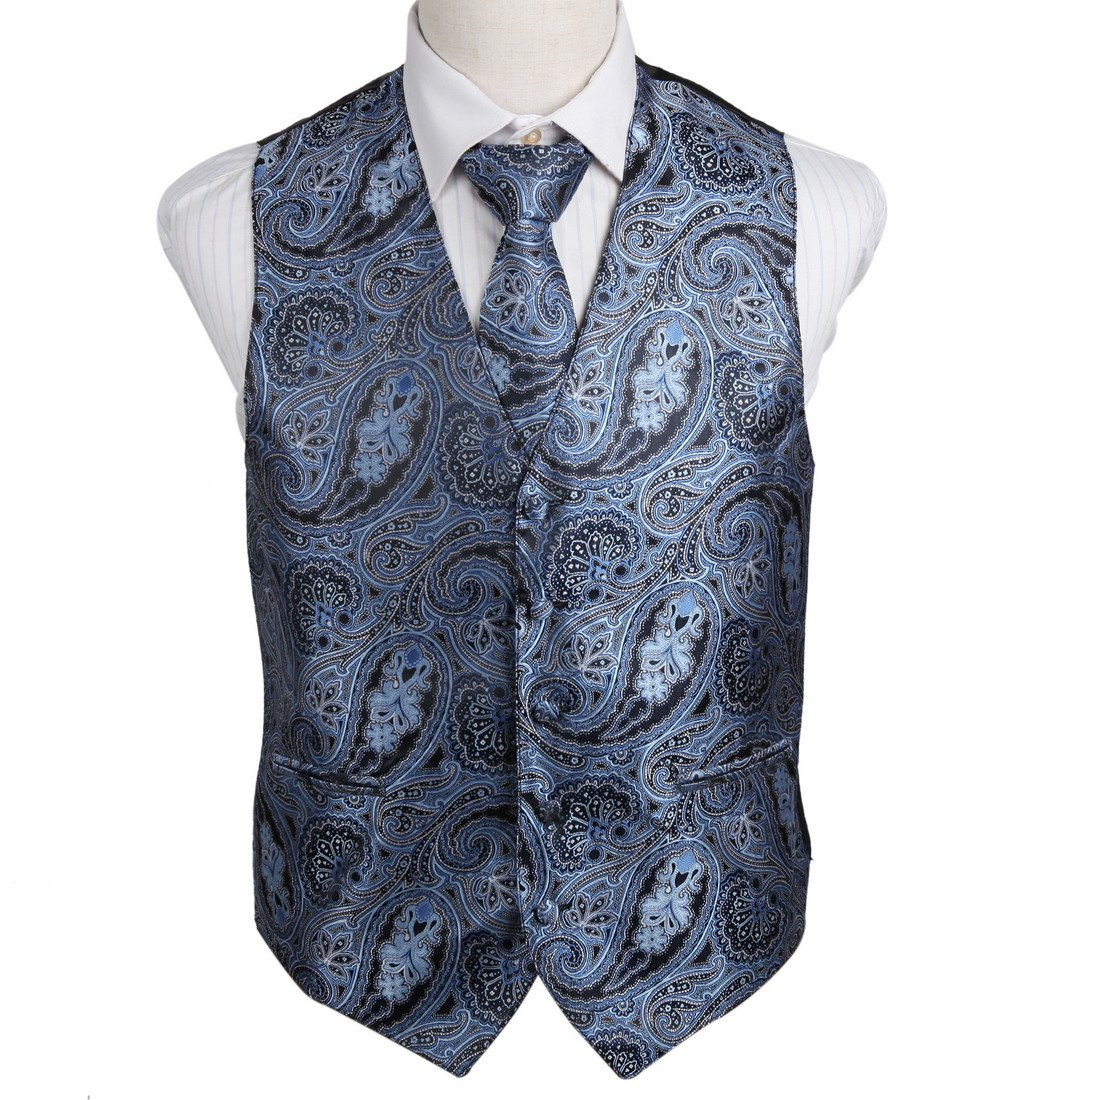 EGD2B03A-3XL Grey Blue Travel Dad Patterns Microfiber Dress Tuxedo Vest Neck Tie Set Inspire For Casual By Epoint